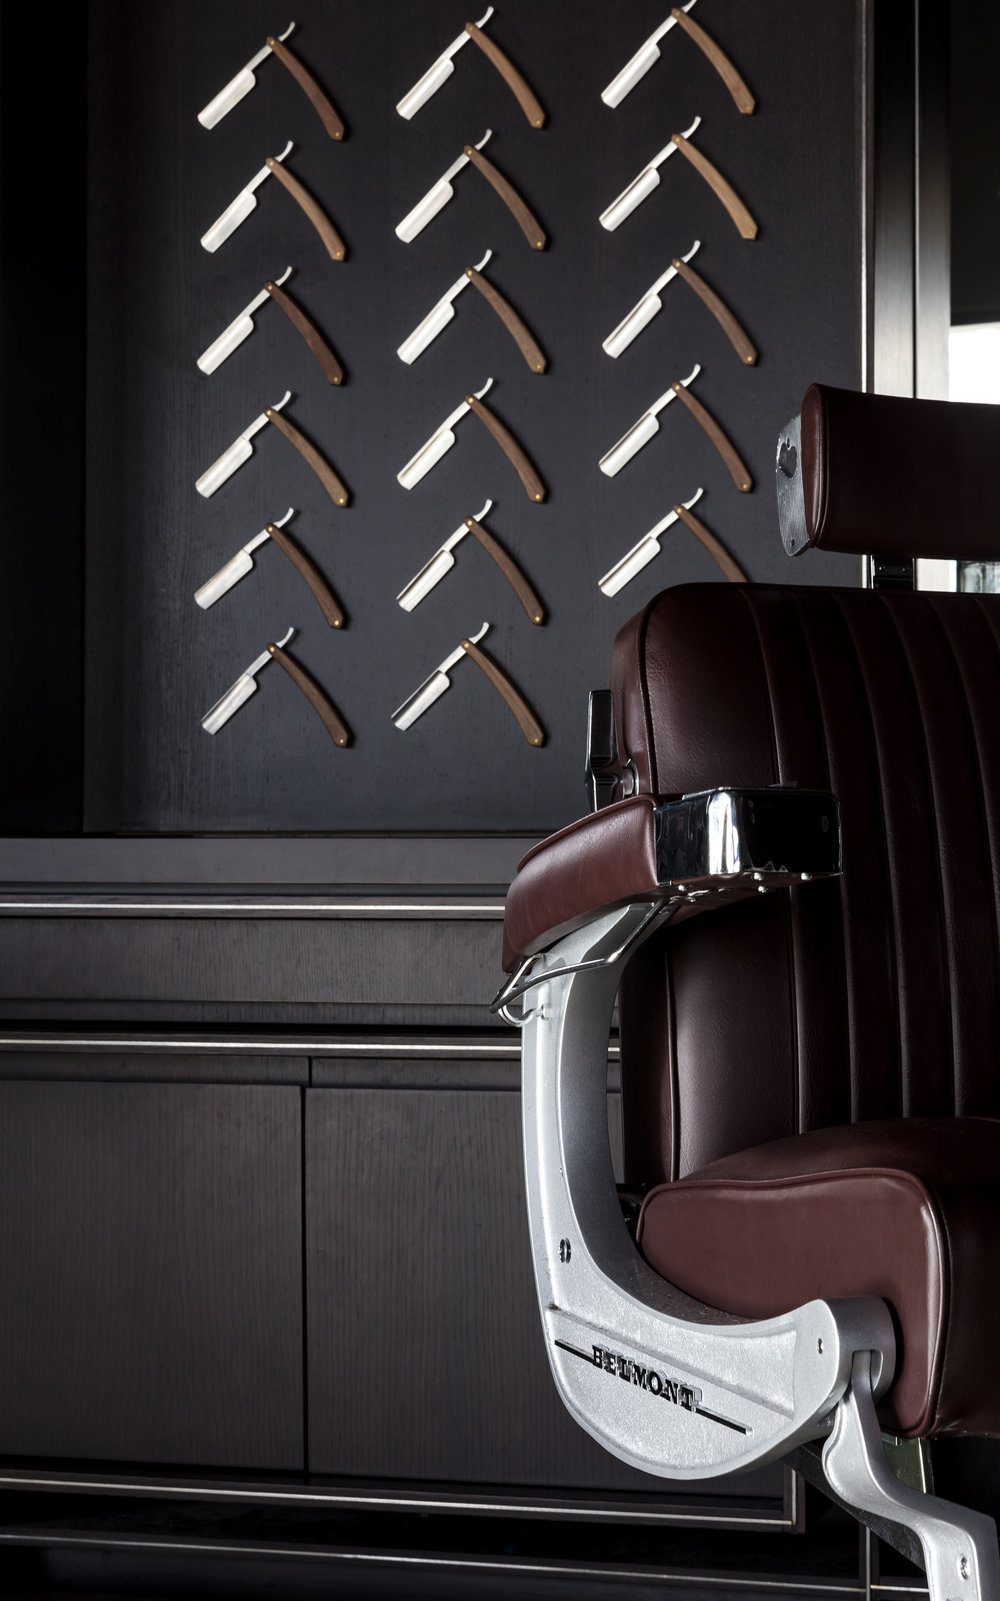 Chaps & Co-JLT-Dubai-Barbershop-Belmont-Brown-Leather-Blades-Joinery-Interior-Architect.jpg